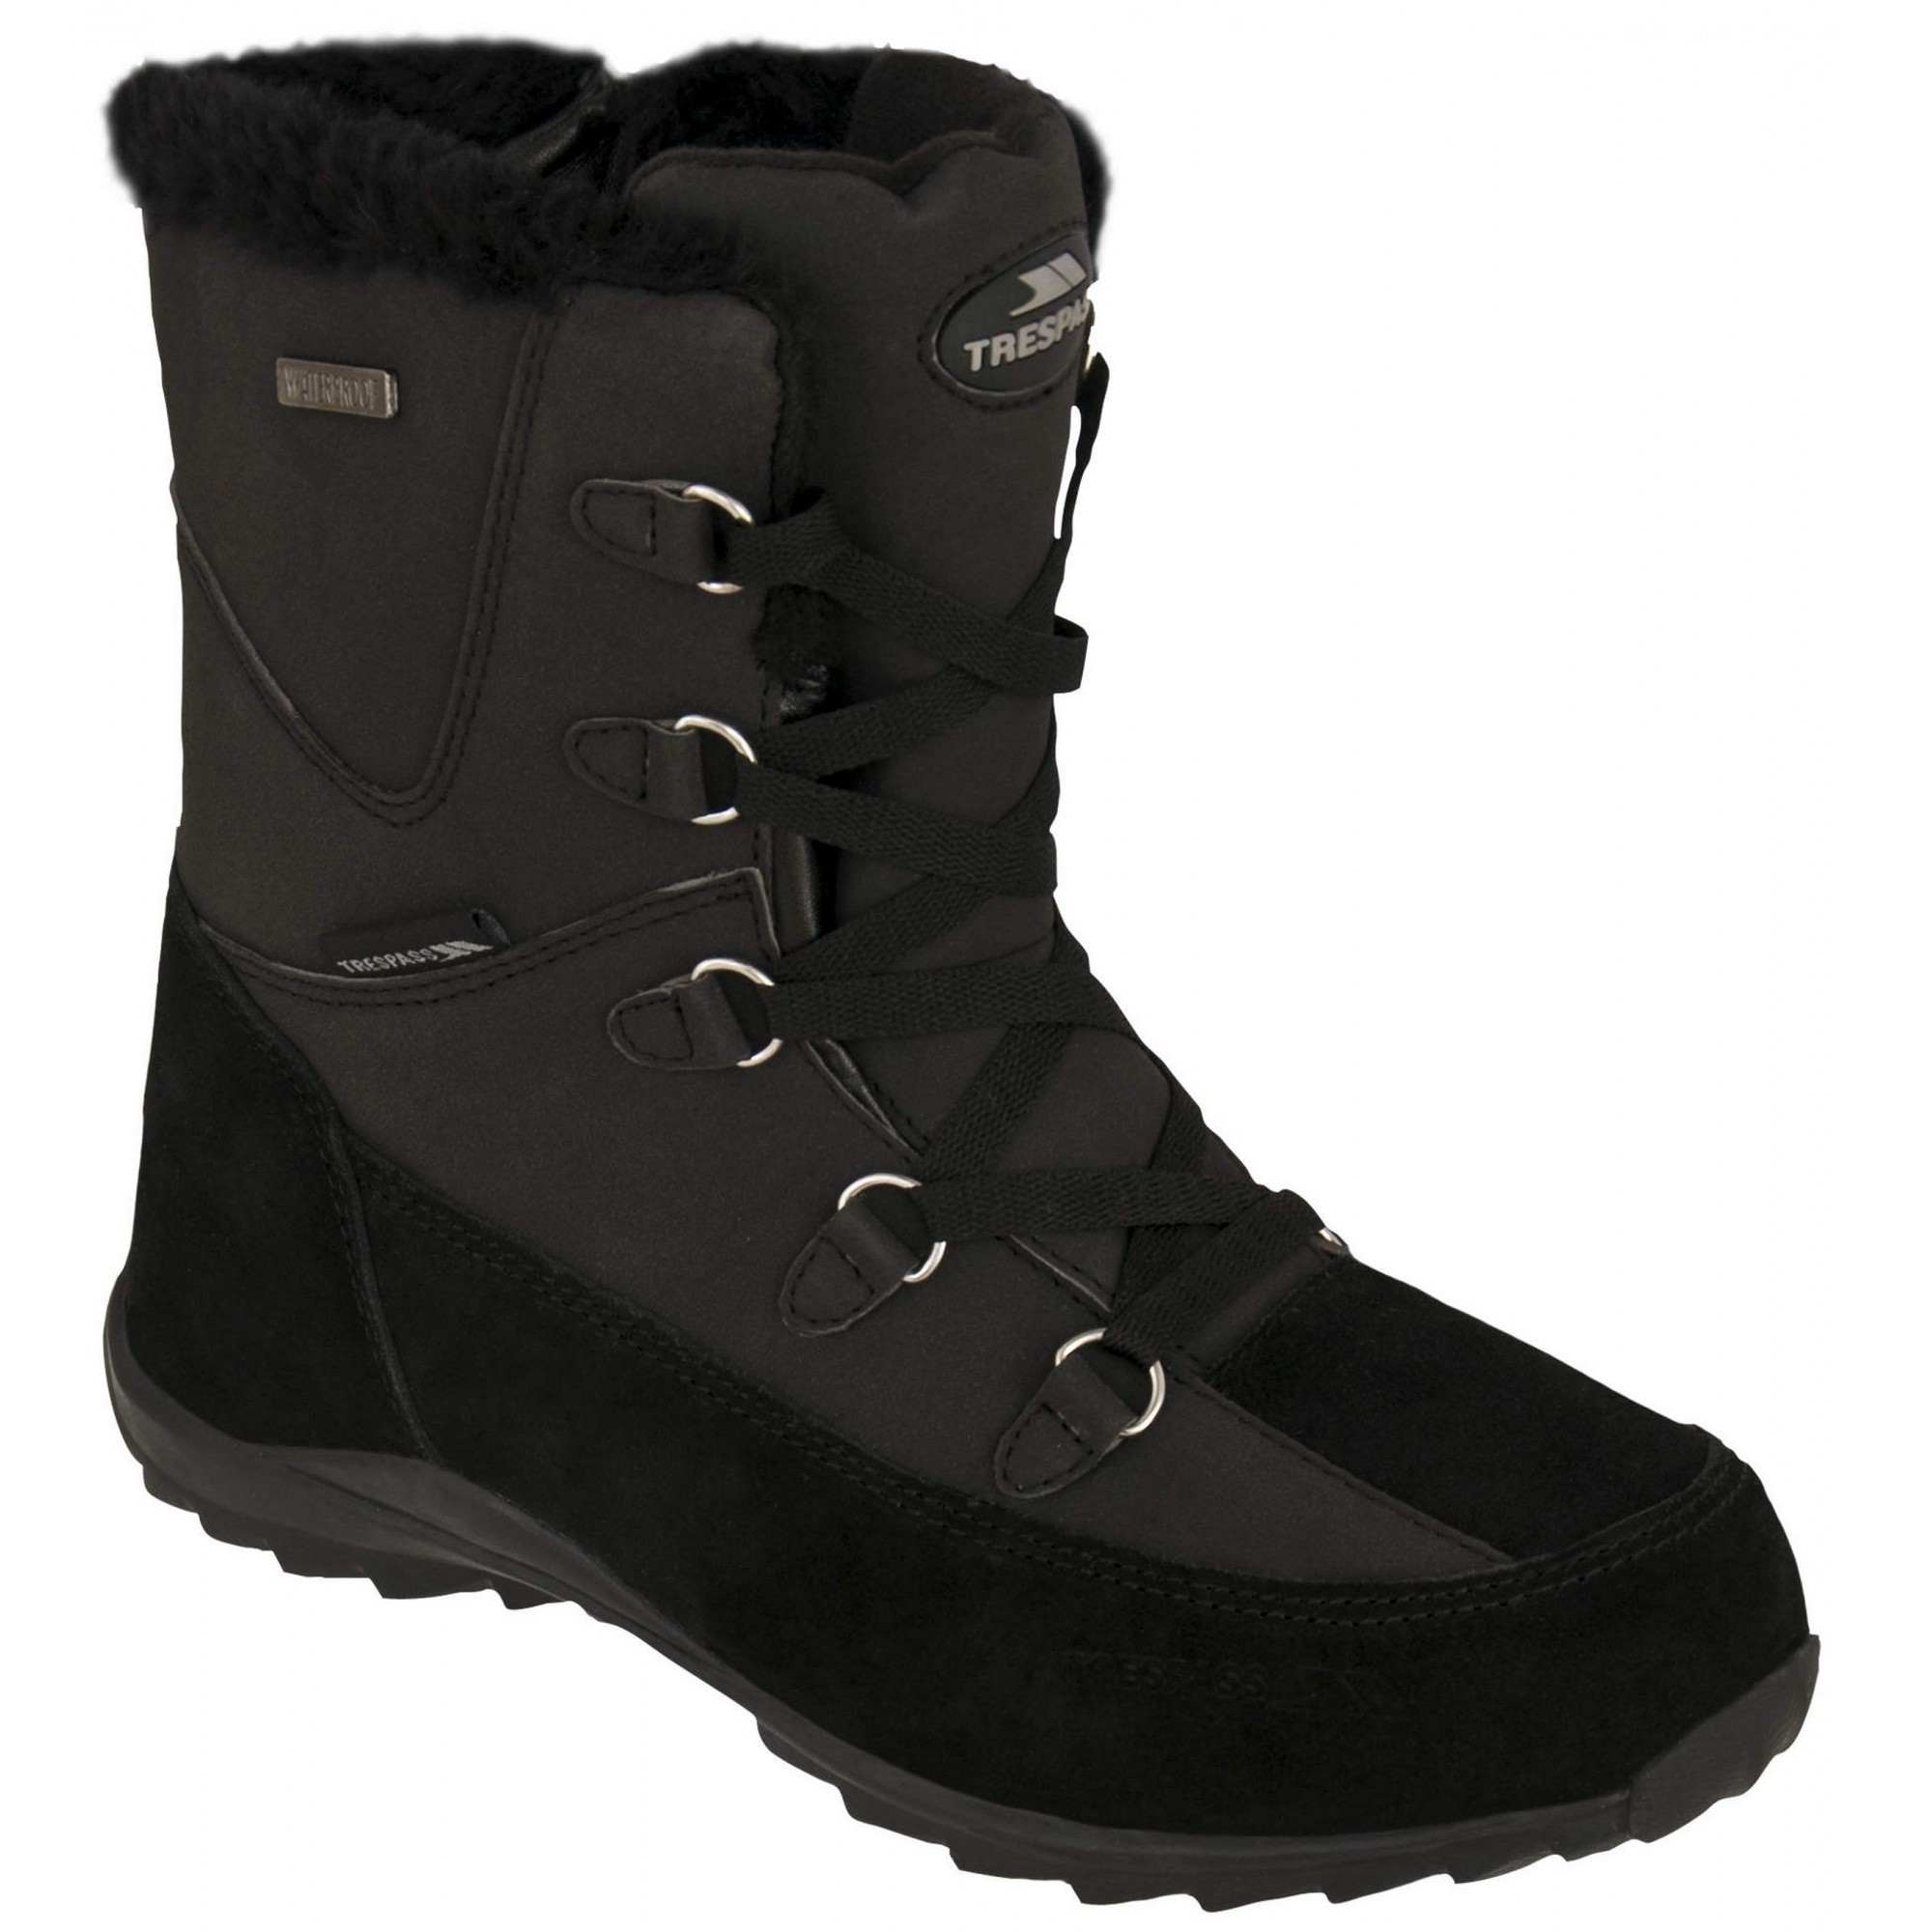 Innovative SOREL WOMENS GLACY EXPLORER LACE UP SNOW WINTER TALL BOOTS WATERPROOF